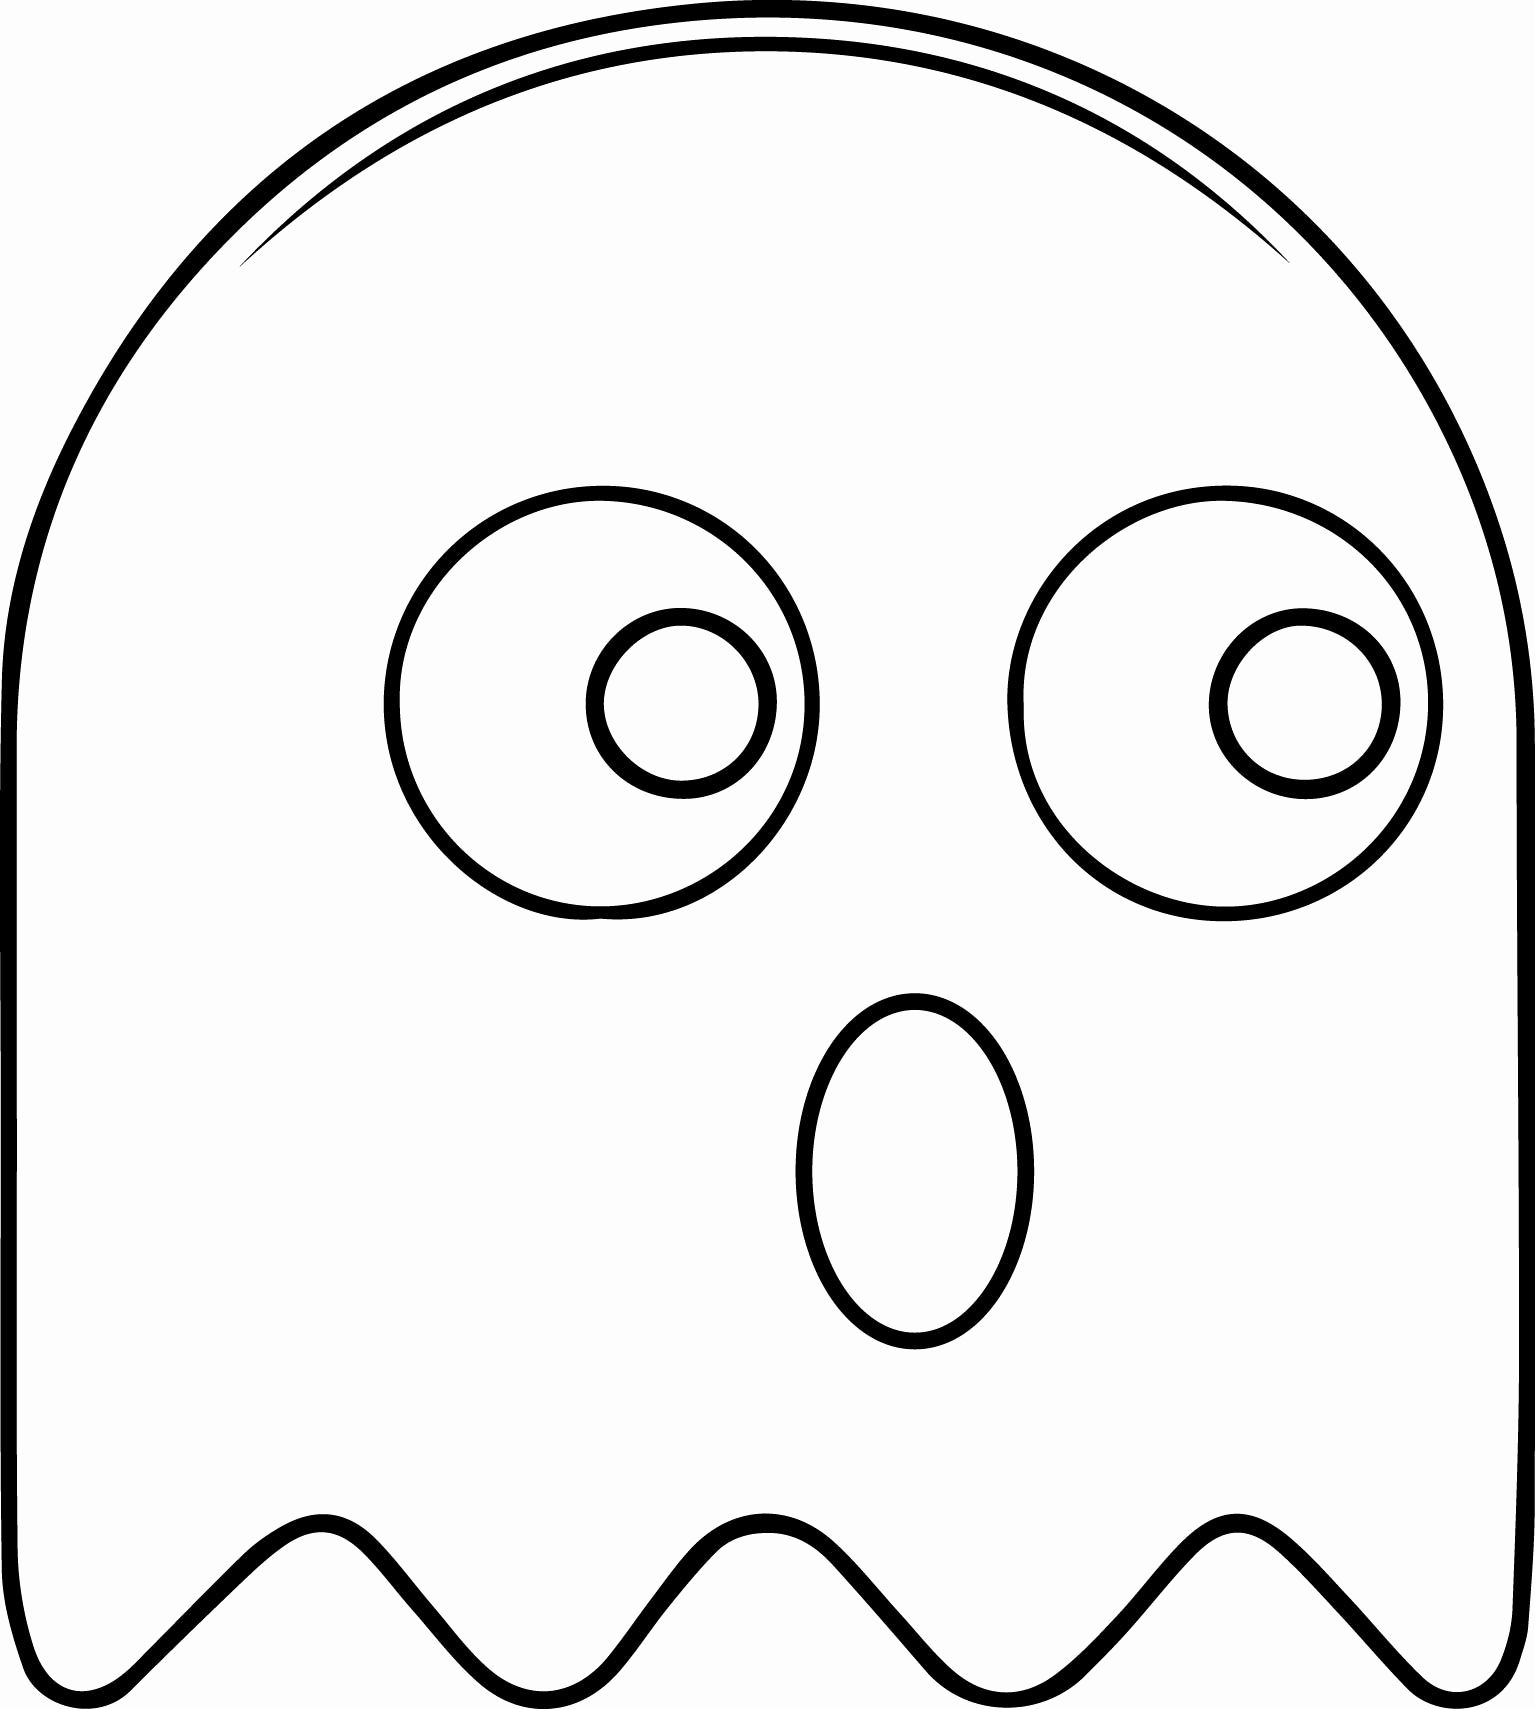 Casper The Friendly Ghost Coloring Pages At Getcolorings